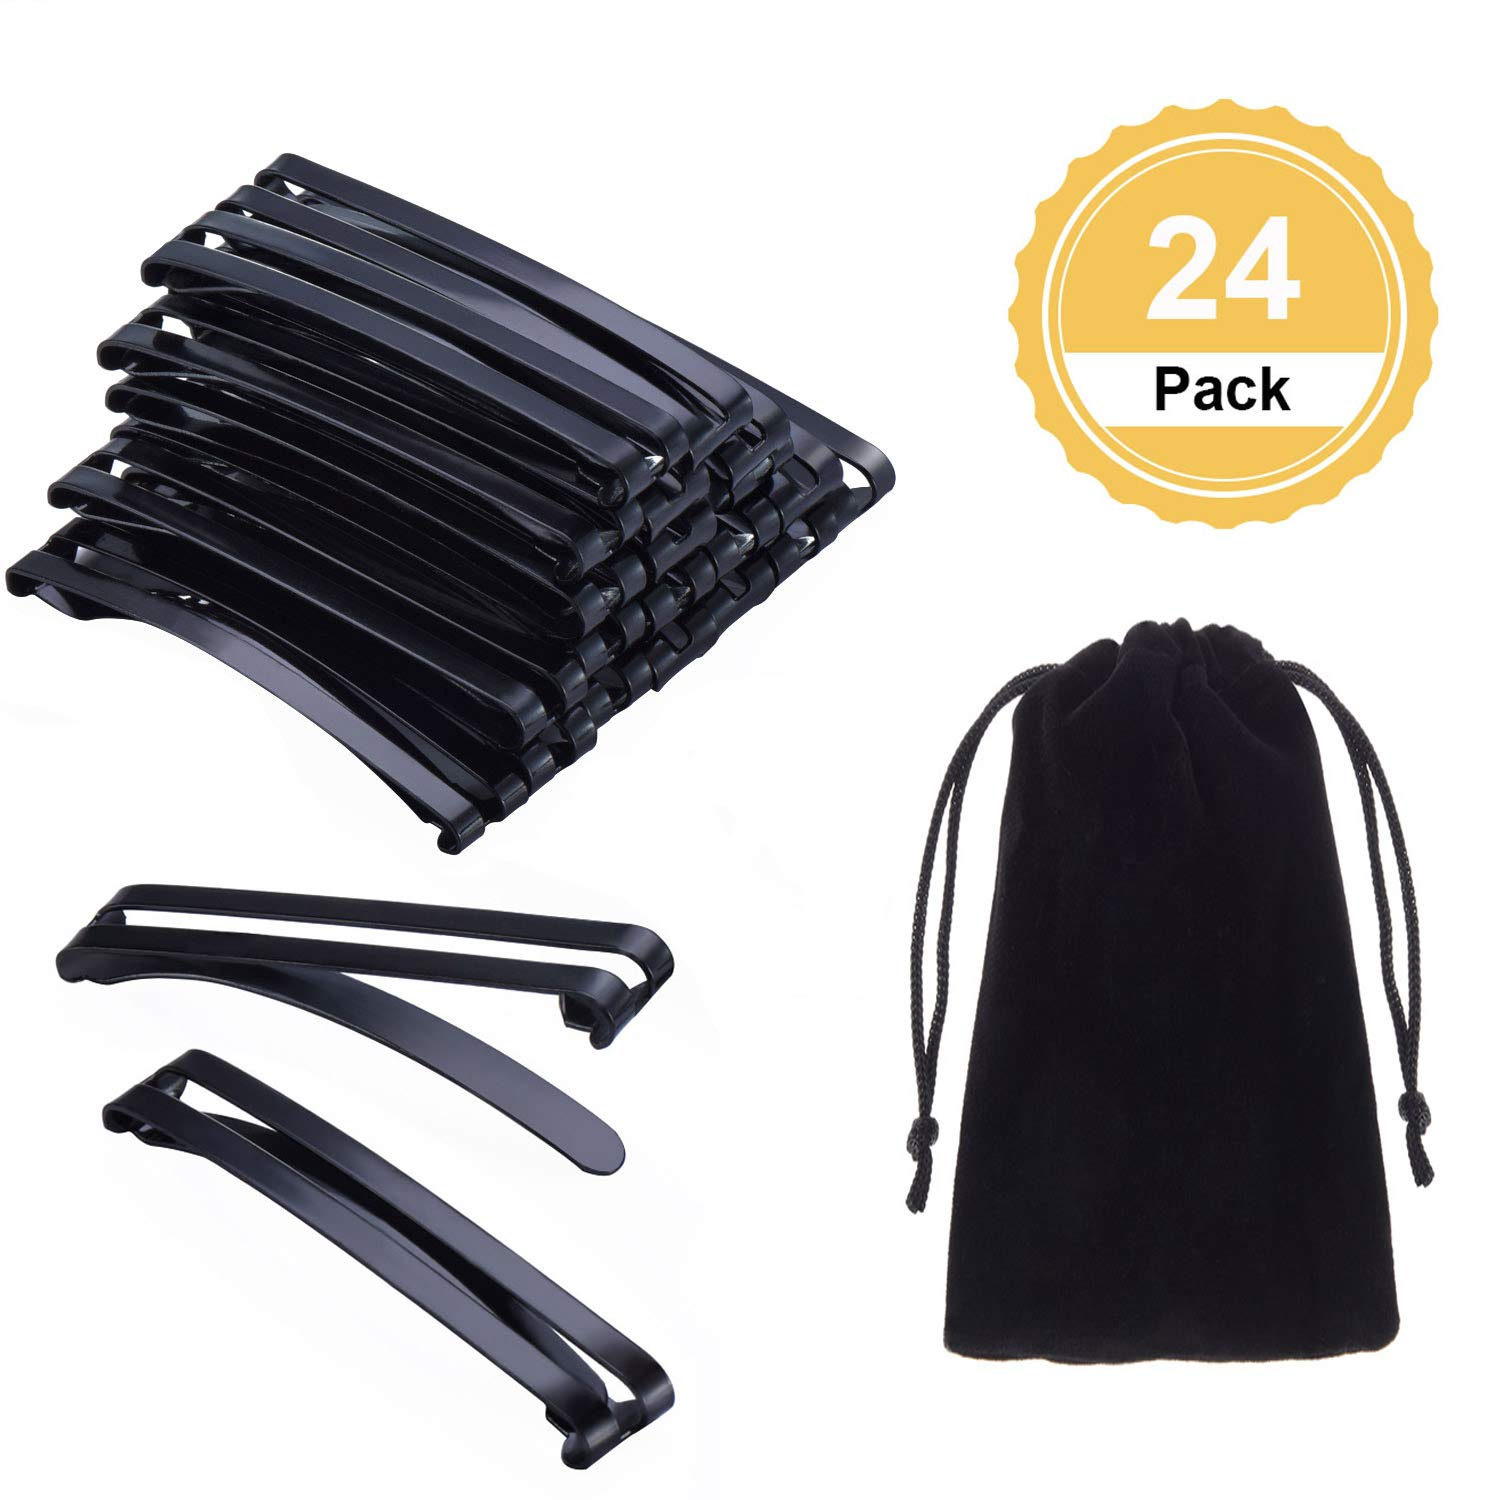 Canomo 24 Pack Stay Tight Grip Open Center Hair Barrettes Metal Hair Clips for Girls and Women, 60mm(Black) by Canomo (Image #1)